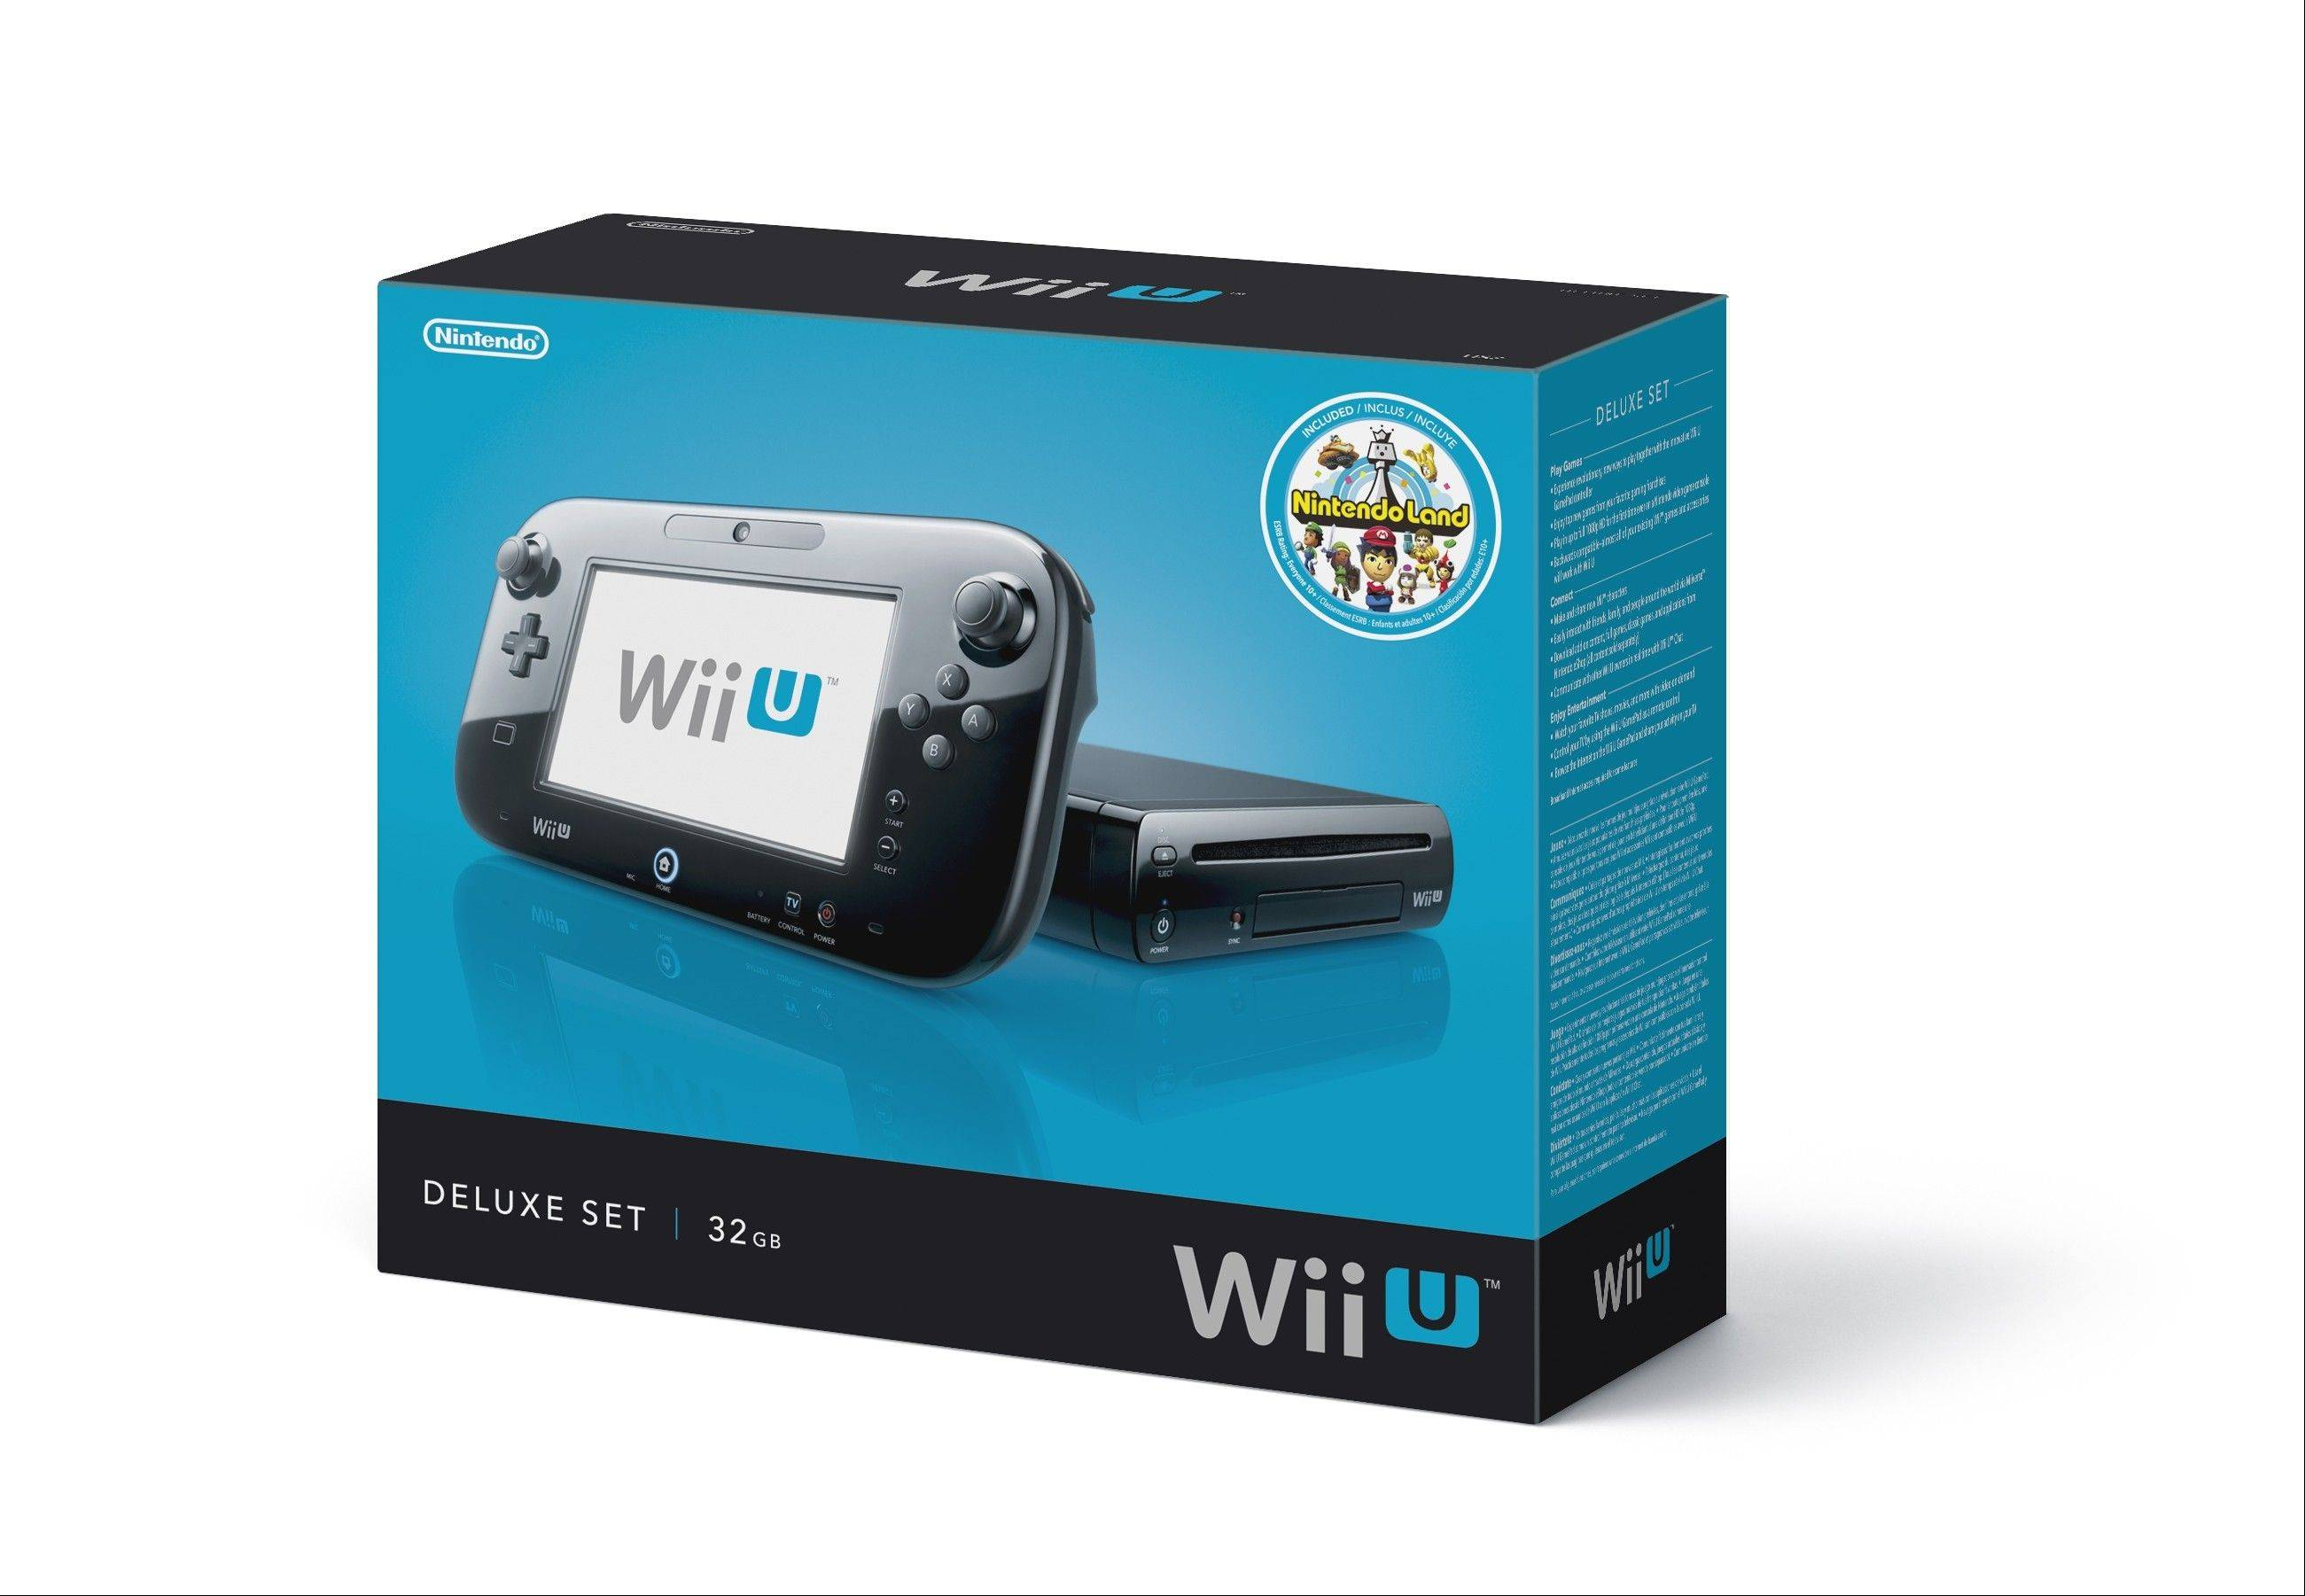 Nintendo's TVii, which comes with the new Wii U game console and its innovative GamePad touchscreen controller, transforms the GamePad by turning it into a simple remote control that operates your TV and set-top box.